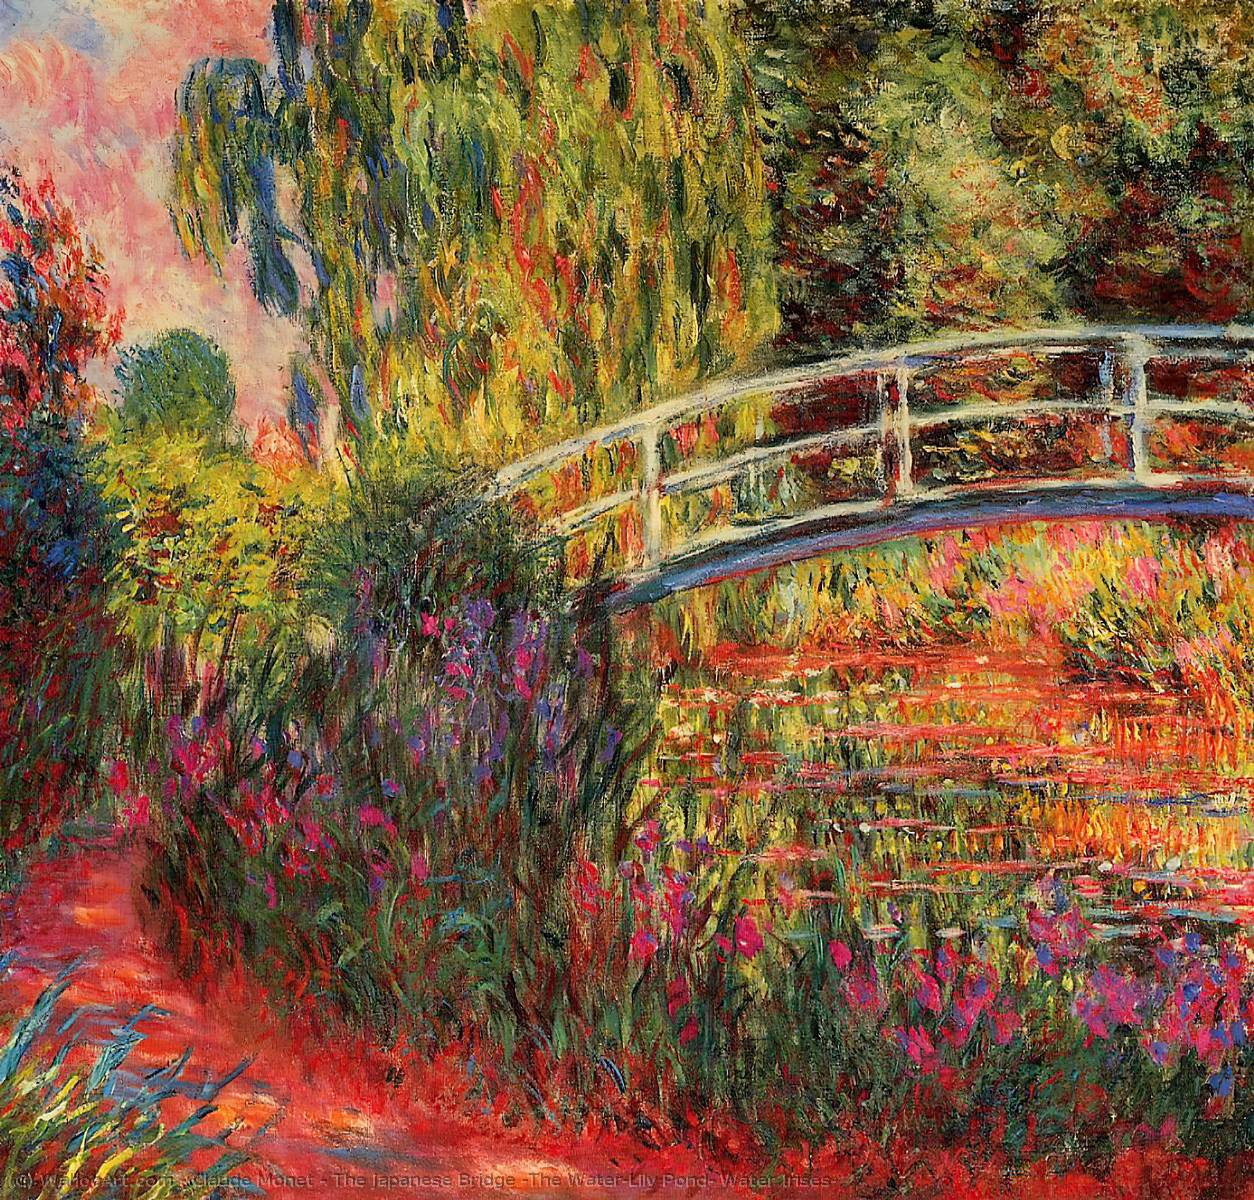 famous painting The Japanese Bridge (The Water-Lily Pond, Water Irises) of Claude Monet